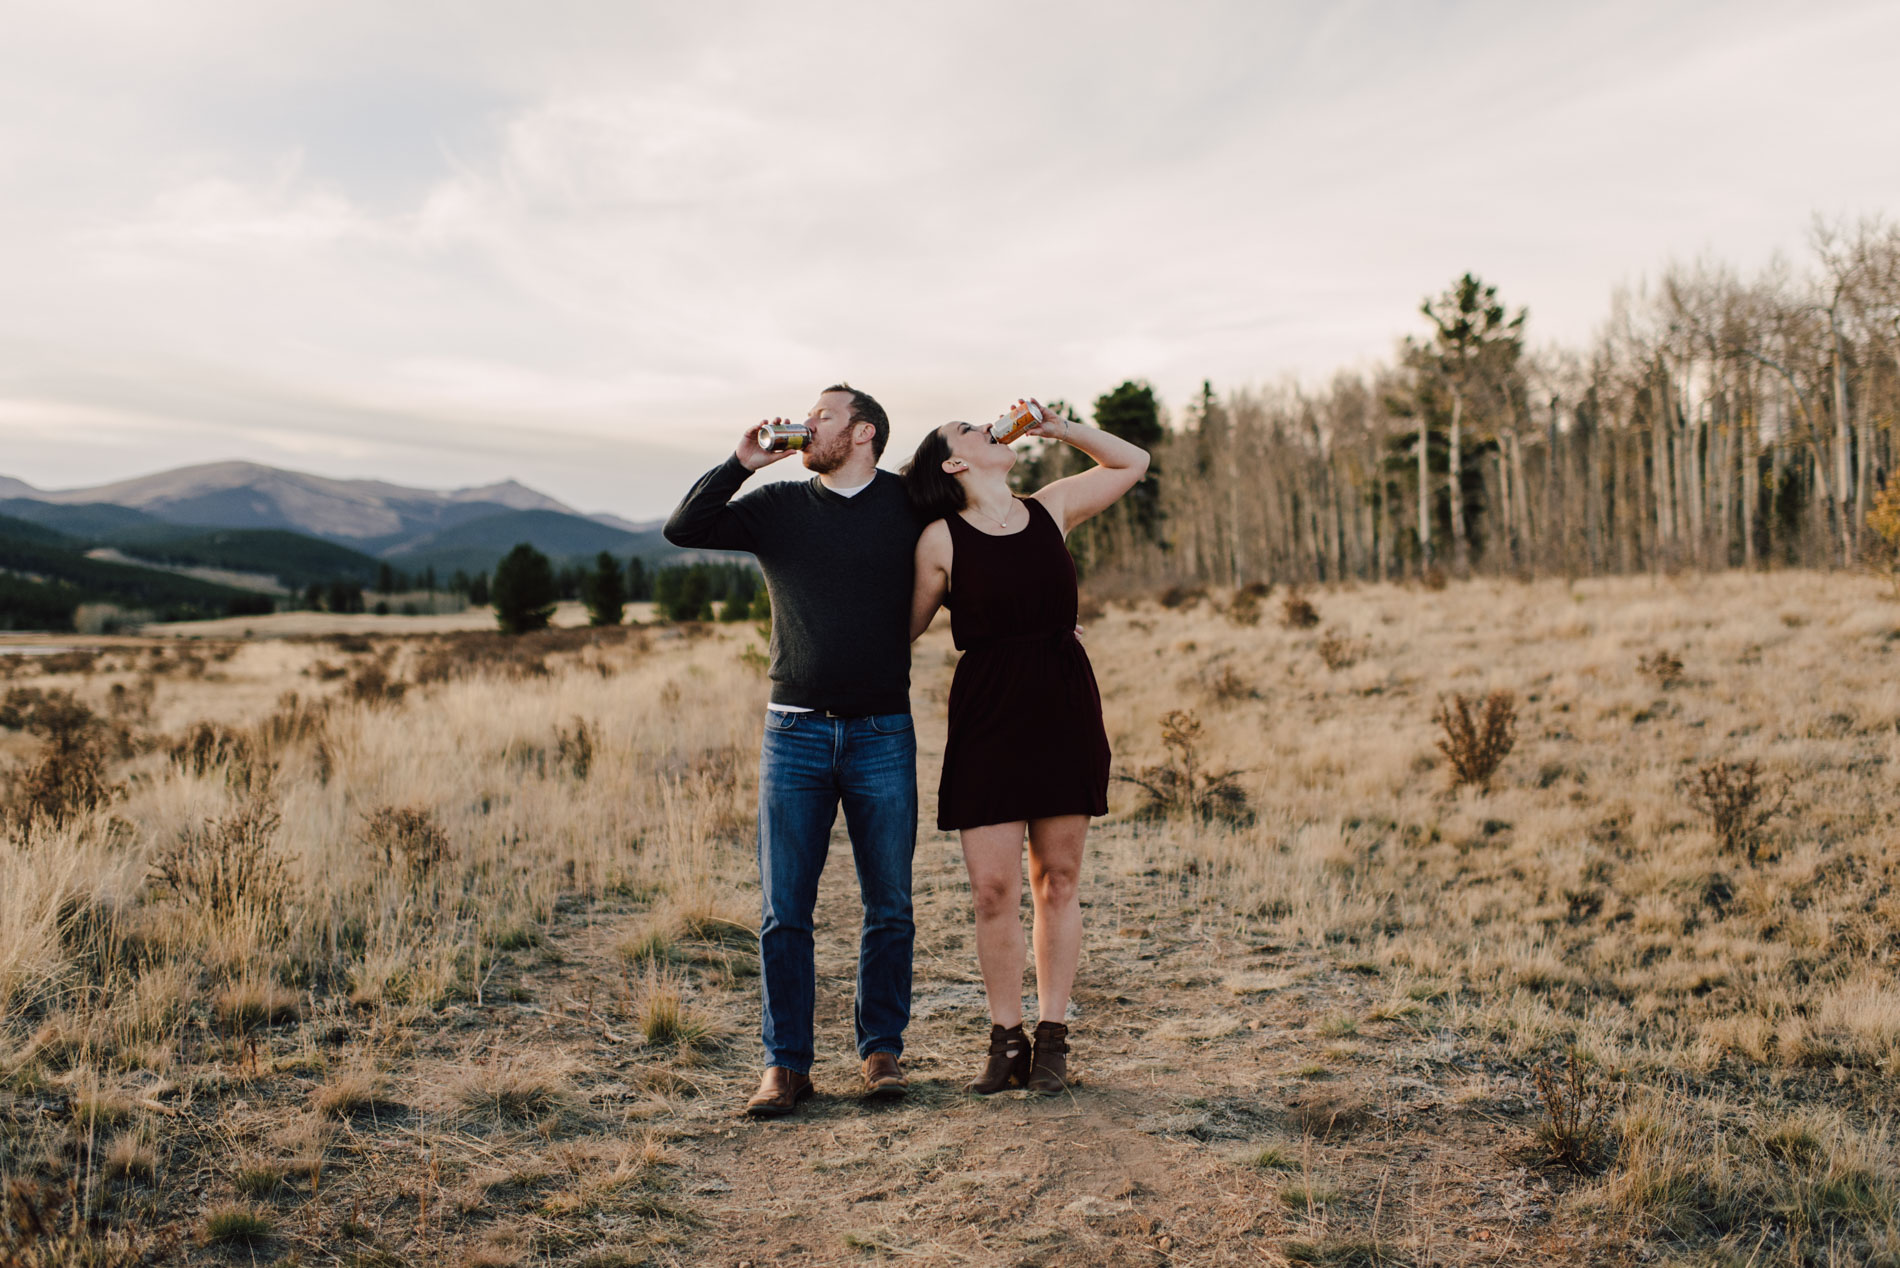 kenosha-pass-Engagement-session-colorado-engagement-session-Adventurous-Wedding-Photography-Adventurous-Wedding-Photograph-Adventure-Elopement-Photographer-Adventurous-Elopement-Photographer-beer-engagement-session